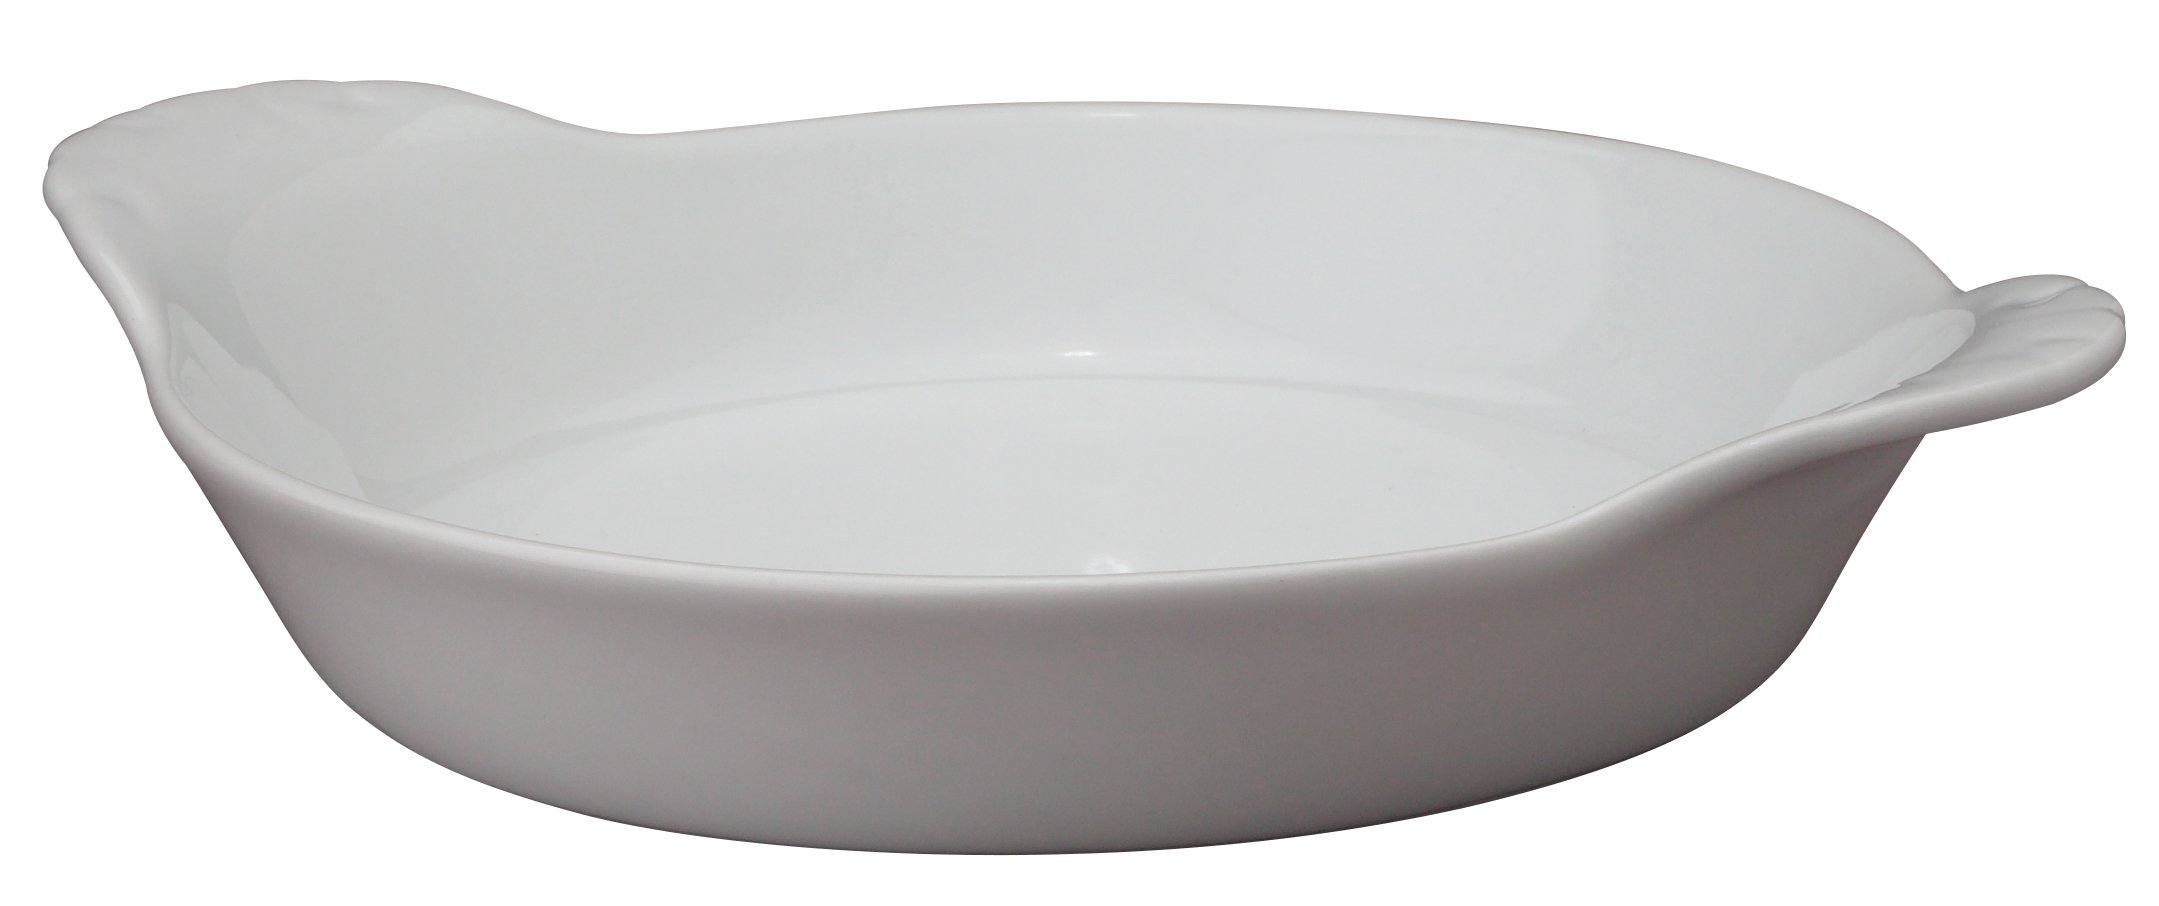 HIC Round Au Gratin Baking Dishes, Porcelain, 4-Ounce, 5-Inch, Set of 6 by HIC Harold Import Co. (Image #1)